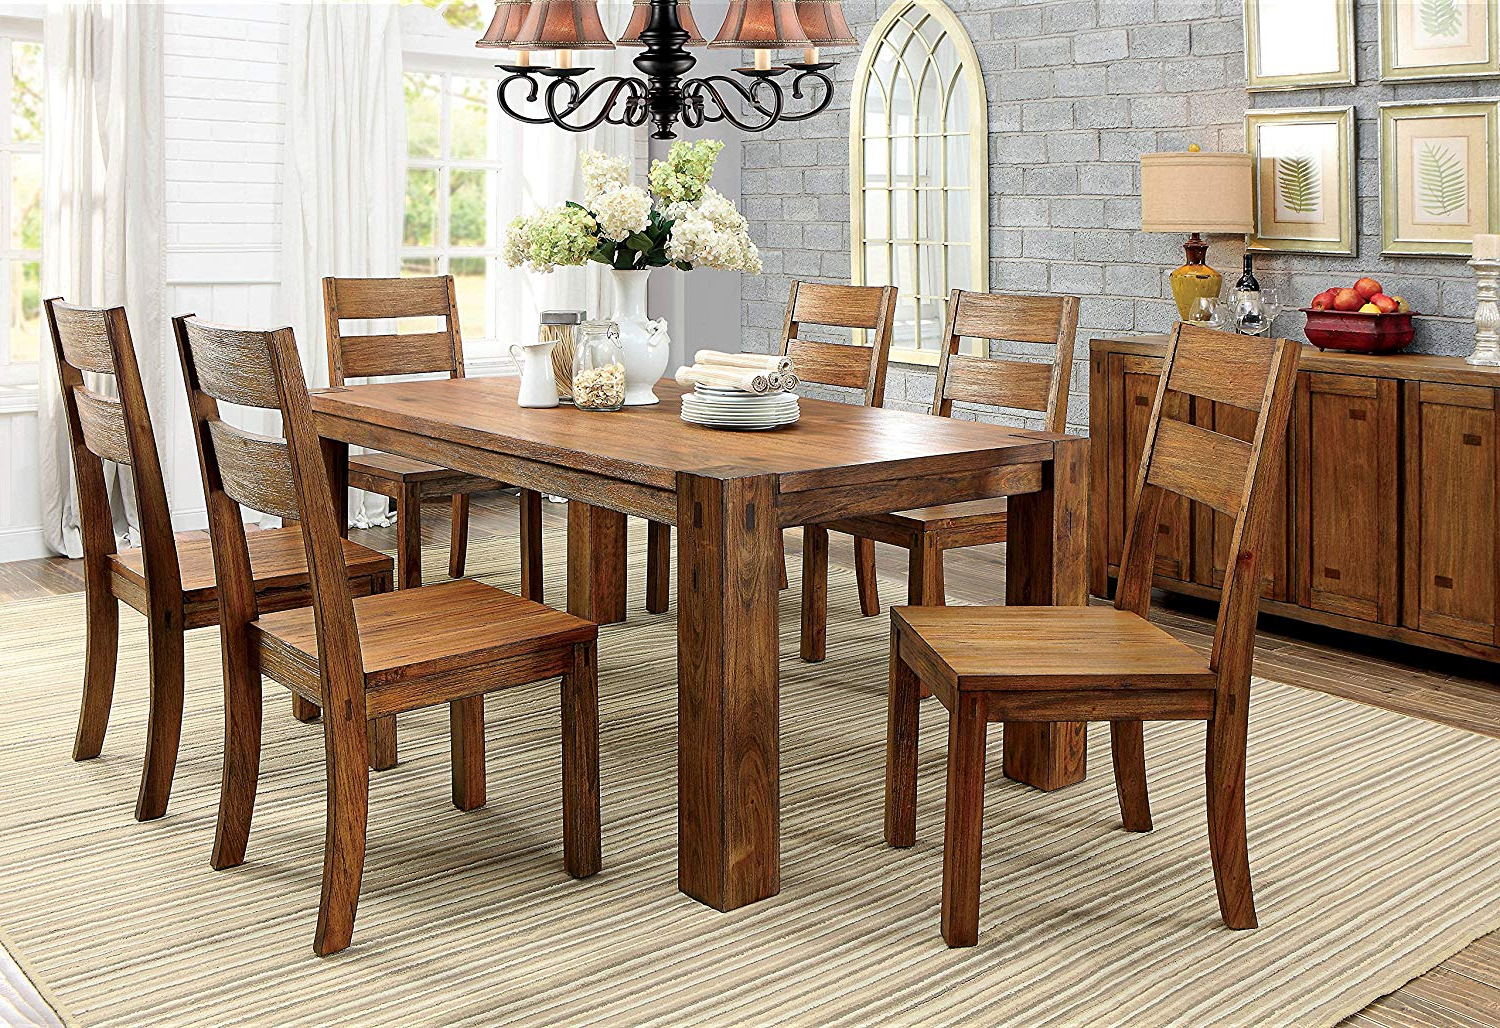 Well Liked Amazon – Furniture Of America Maynard 7 Piece Wooden Dining Set For Maynard 5 Piece Dining Sets (View 9 of 20)